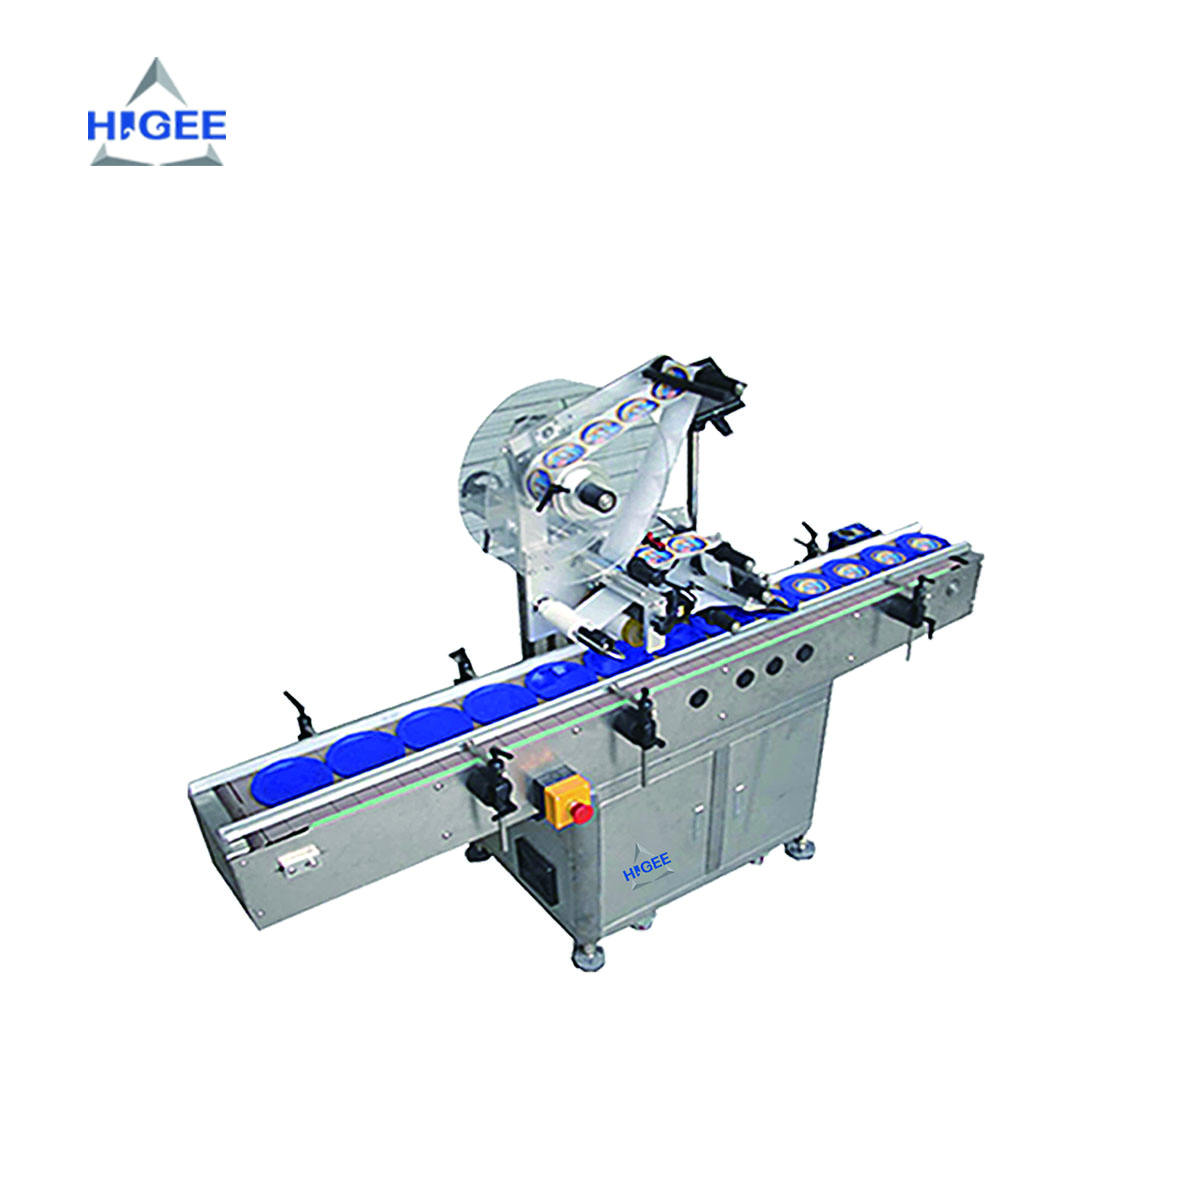 Automatic top size labeling machine HAP200 self adhesive sticker labeler on flat surface of box, bottle, card label applicator